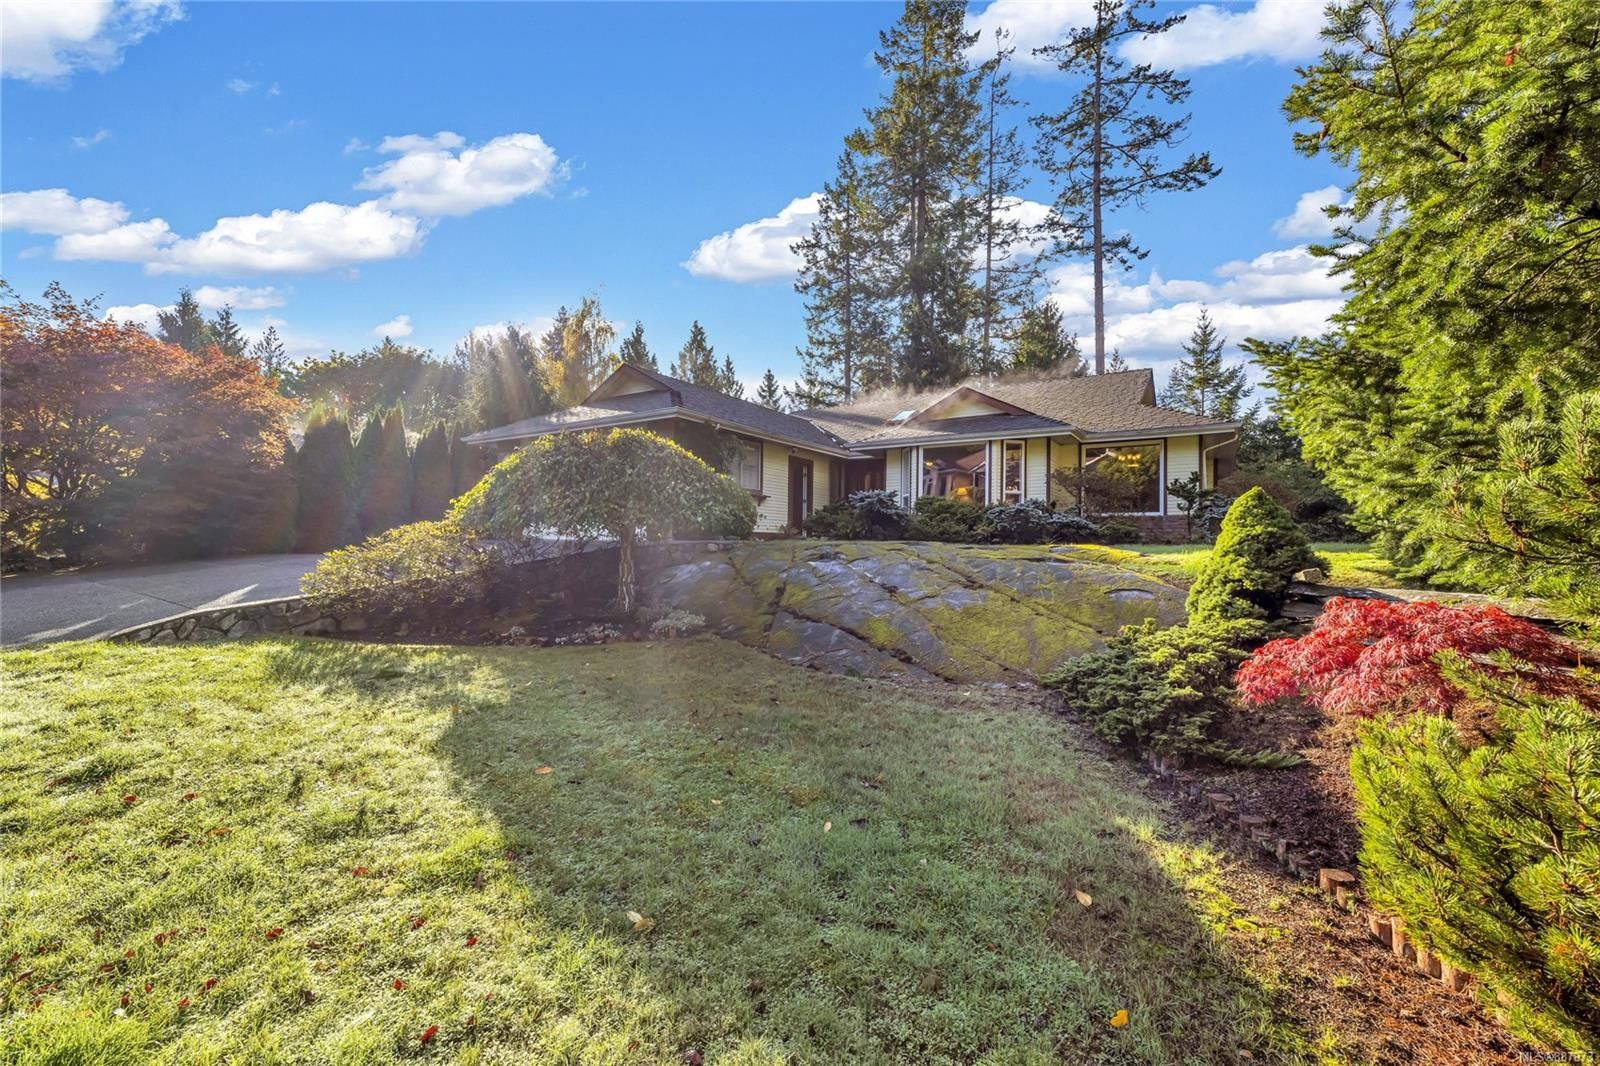 Main Photo: 8574 Kingcome Cres in : NS Dean Park House for sale (North Saanich)  : MLS®# 887973